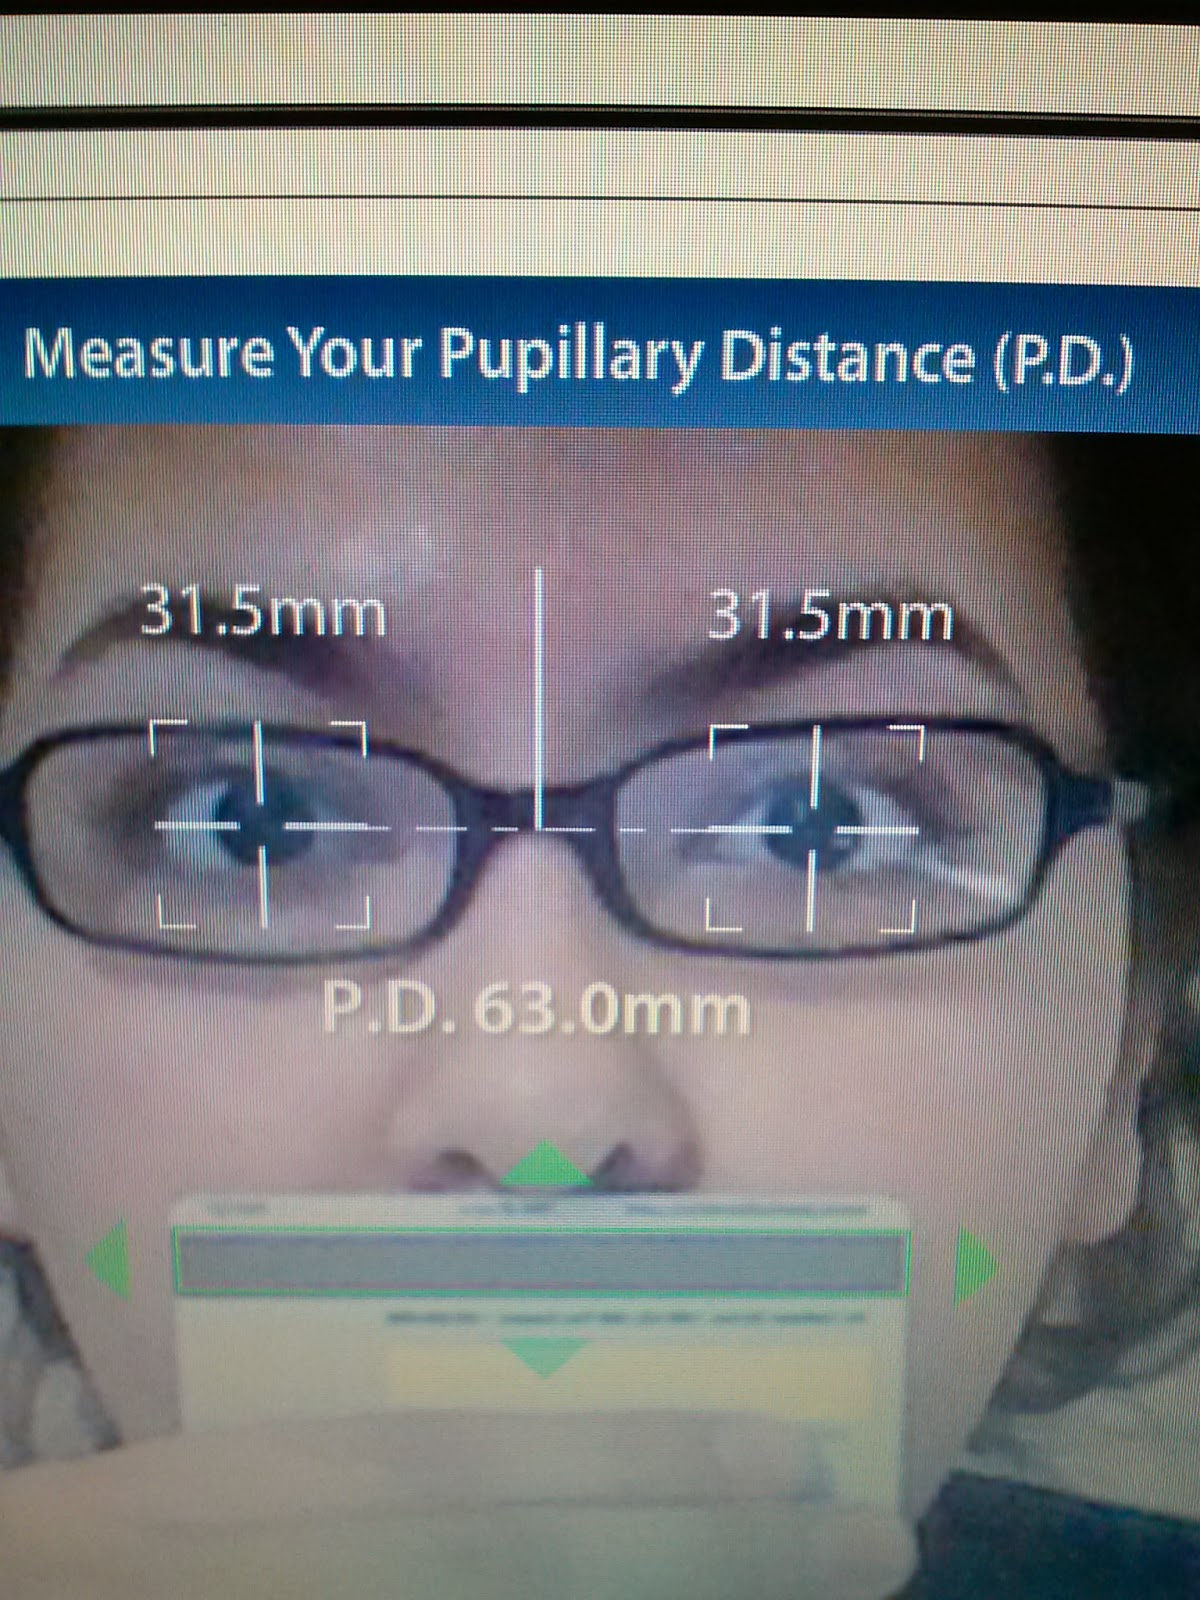 Analyzing: Me: Warby Parker